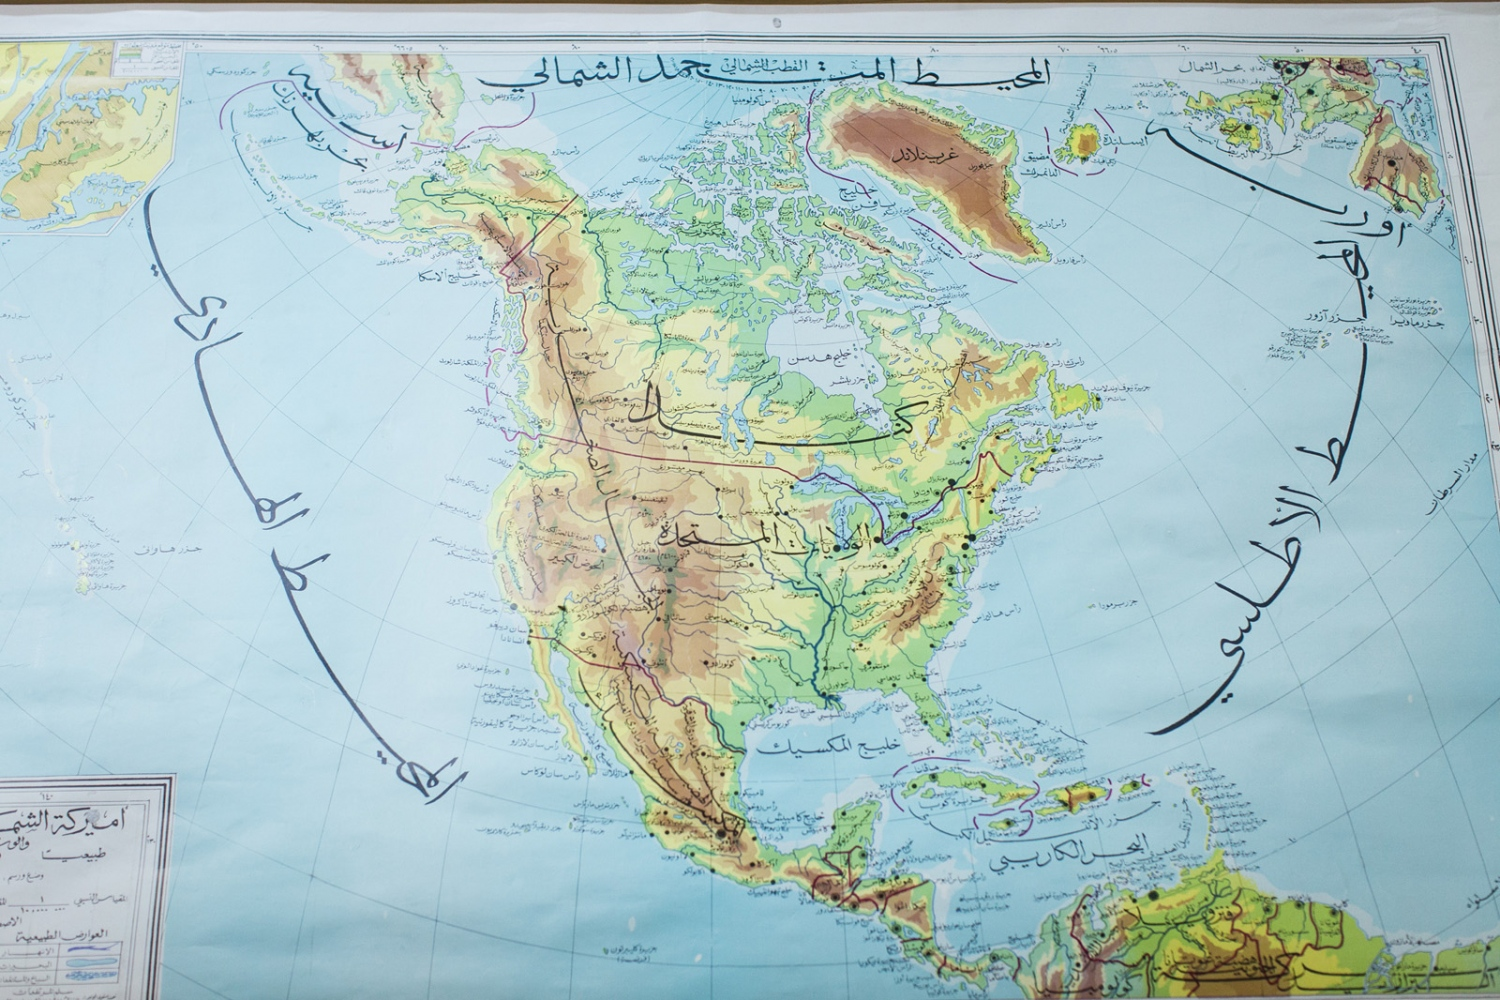 p.p1 {margin: 0.0px 0.0px 0.0px 0.0px; font: 10.0px 'Lucida Grande'} An Arabic language map of North America hangs on the wall of the front room in Mostafa Wafa's home, where classes for Mish Madrasa are held. All of the educational materials in the classroom were donated and all of the tutors volunteer their time to teach the children. Mish Madrasa is a grassroots volunteer group that provides tutoring and after school activities to poor children in Saft el Laban, a slum neighborhood of Cairo.